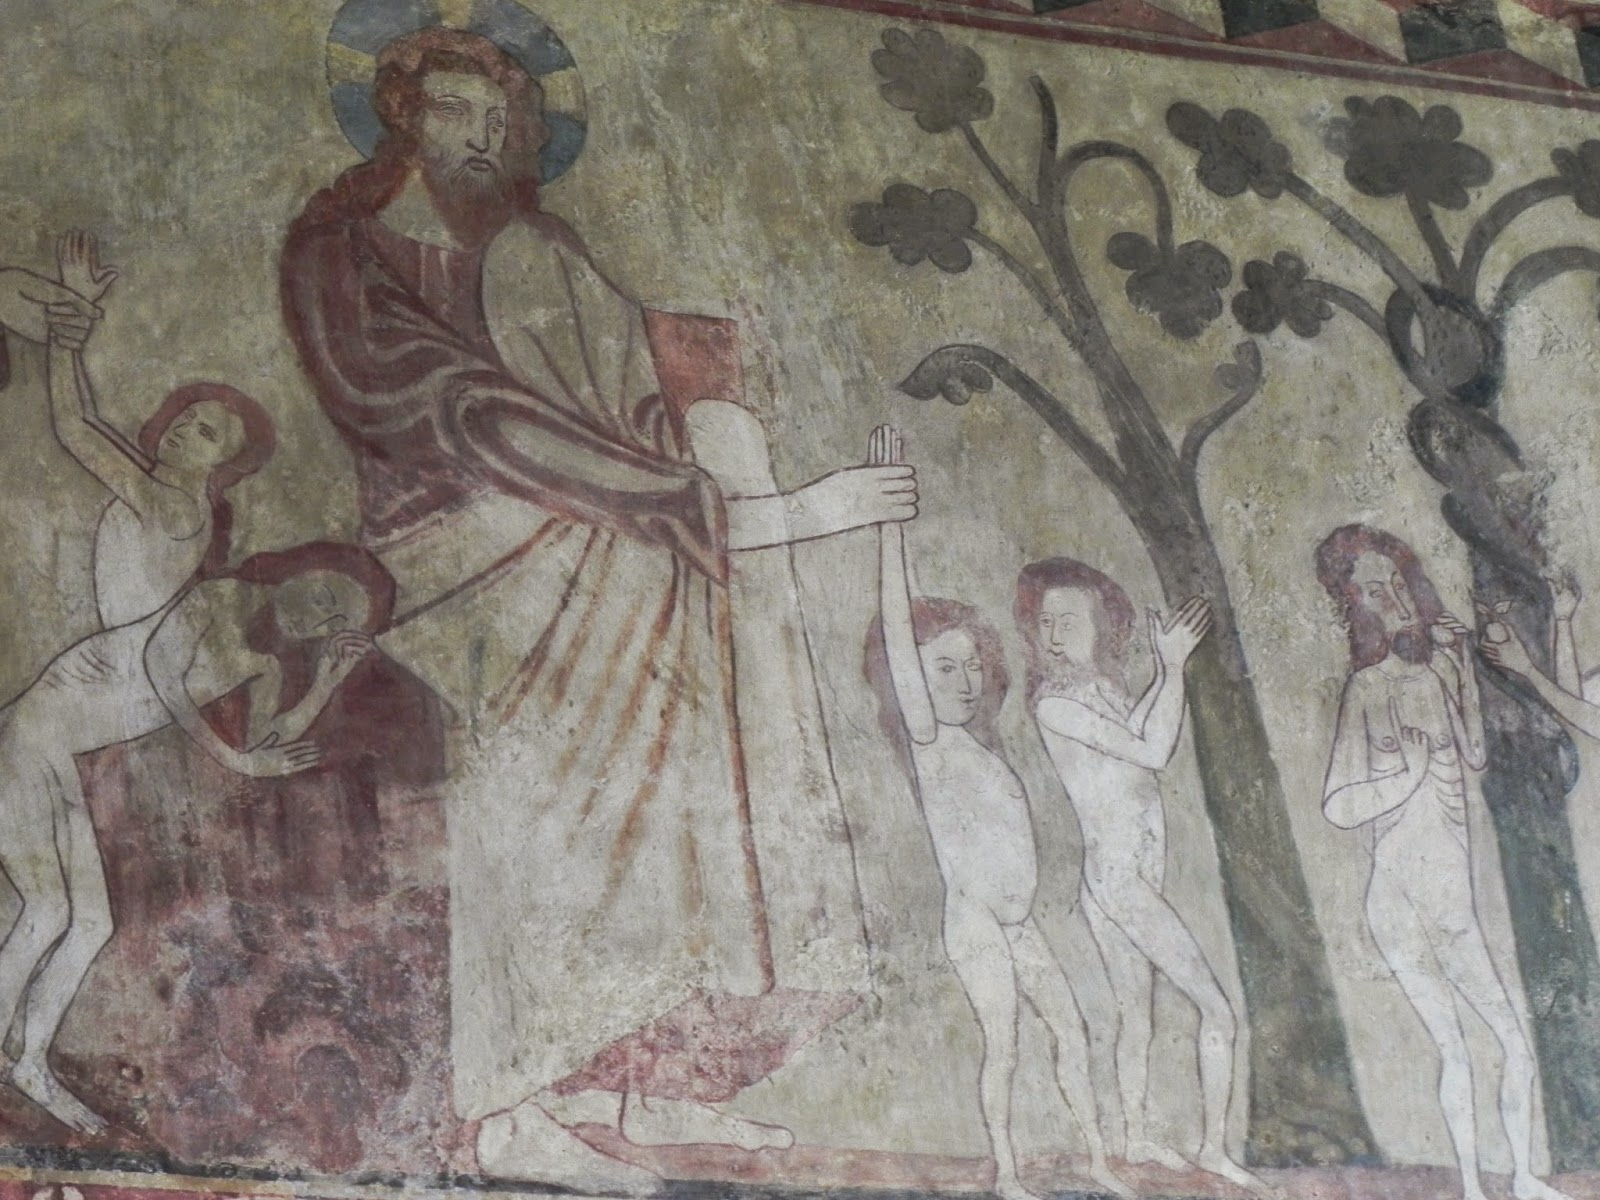 The history girls ghosts on the walls by imogen robertson i have a thing about medieval wall paintings that probably wont come as a great surprise to you i also have a thing about the medieval marginalia as amipublicfo Image collections